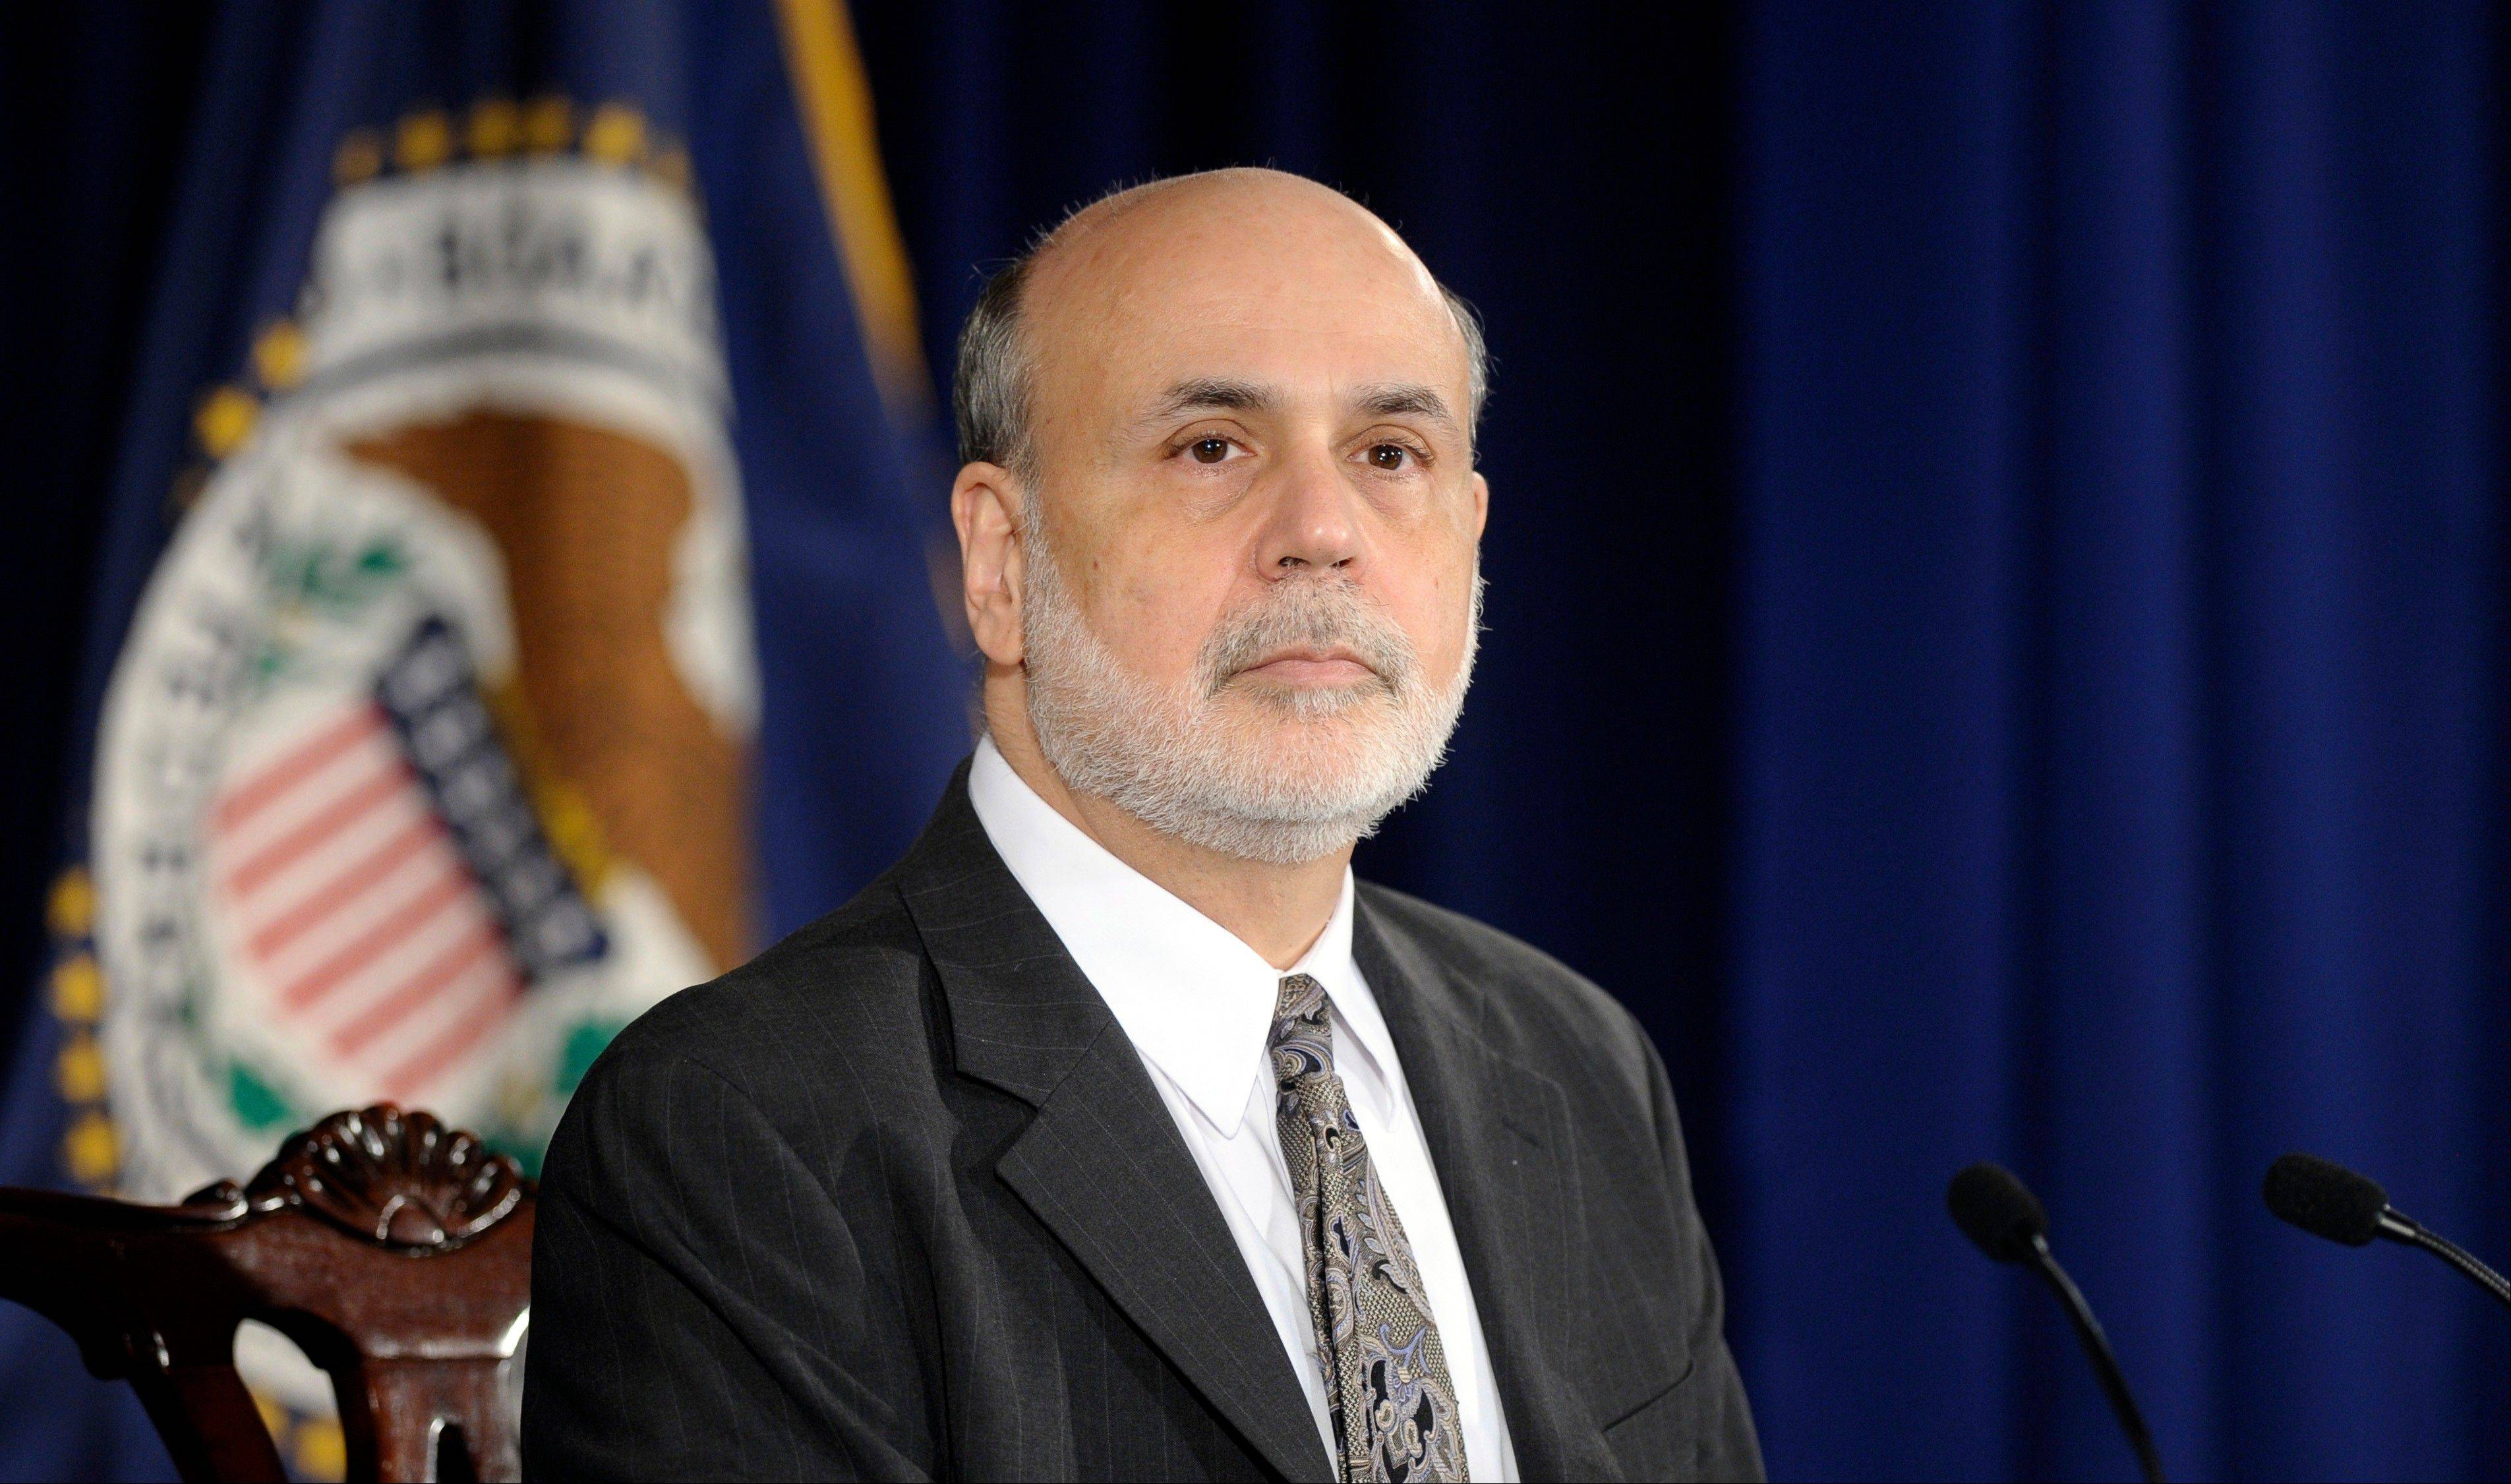 Federal Reserve Chairman Ben Bernanke listens to a question during a news conference at the Federal Reserve in Washington.